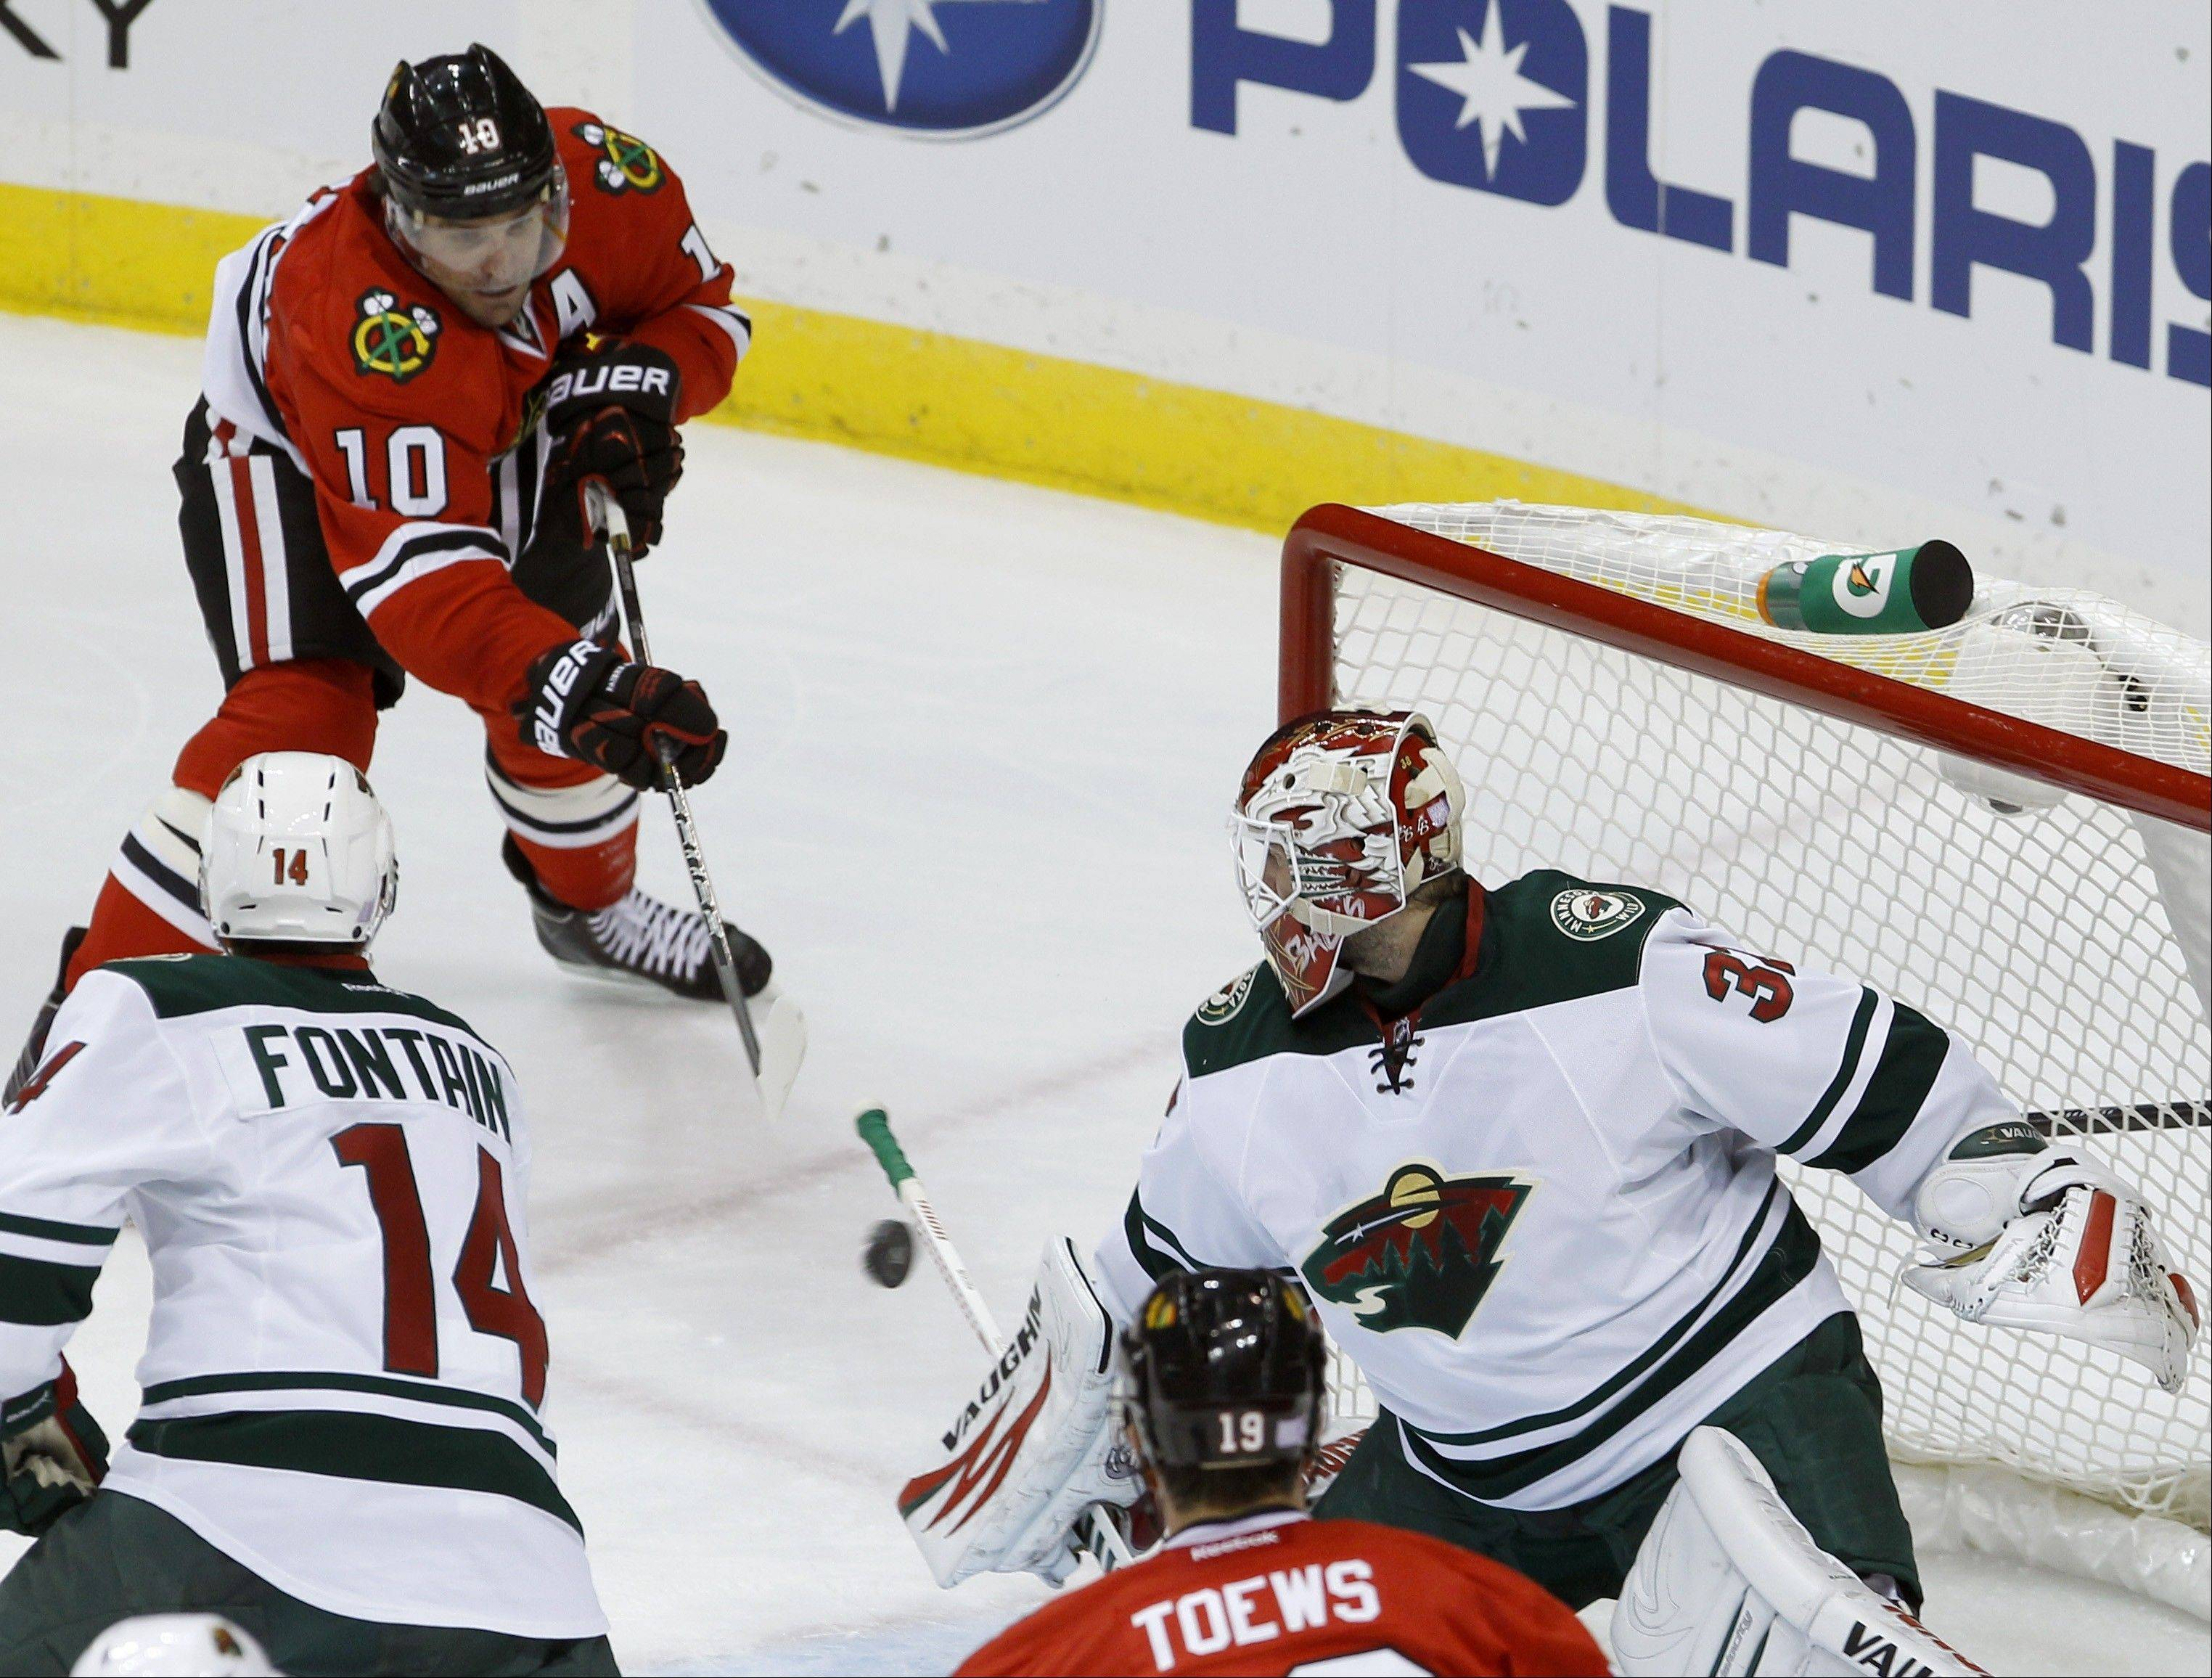 Chicago Blackhawks center Patrick Sharp (10) scores on Minnesota Wild goalie Niklas Backstrom (32) of Finland during the first period of an NHL hockey game in St. Paul , Minn., Monday, Oct. 28, 2013.